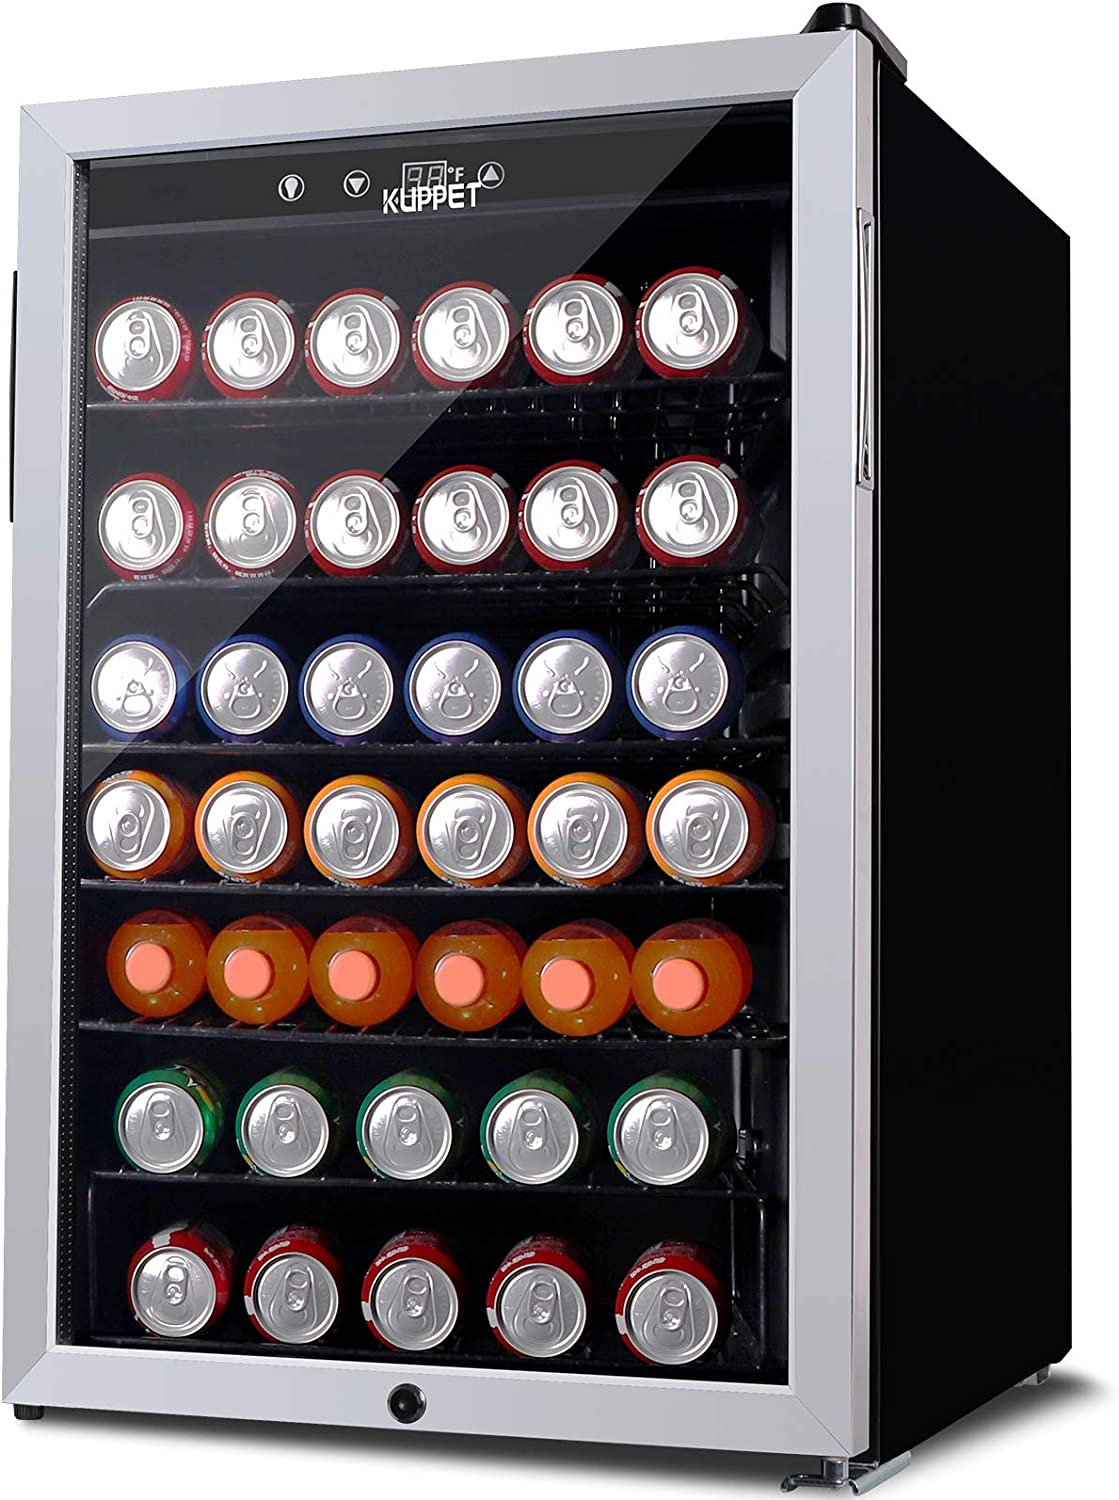 KUPPET 150-Can Beverage Cooler and Refrigerator, Small Mini Fridge for Home, Office or Bar with Glass Door and Adjustable Removable Shelves,Perfect for Soda Beer or Wine, Stainless Steel, 4.5 Cu.Ft.